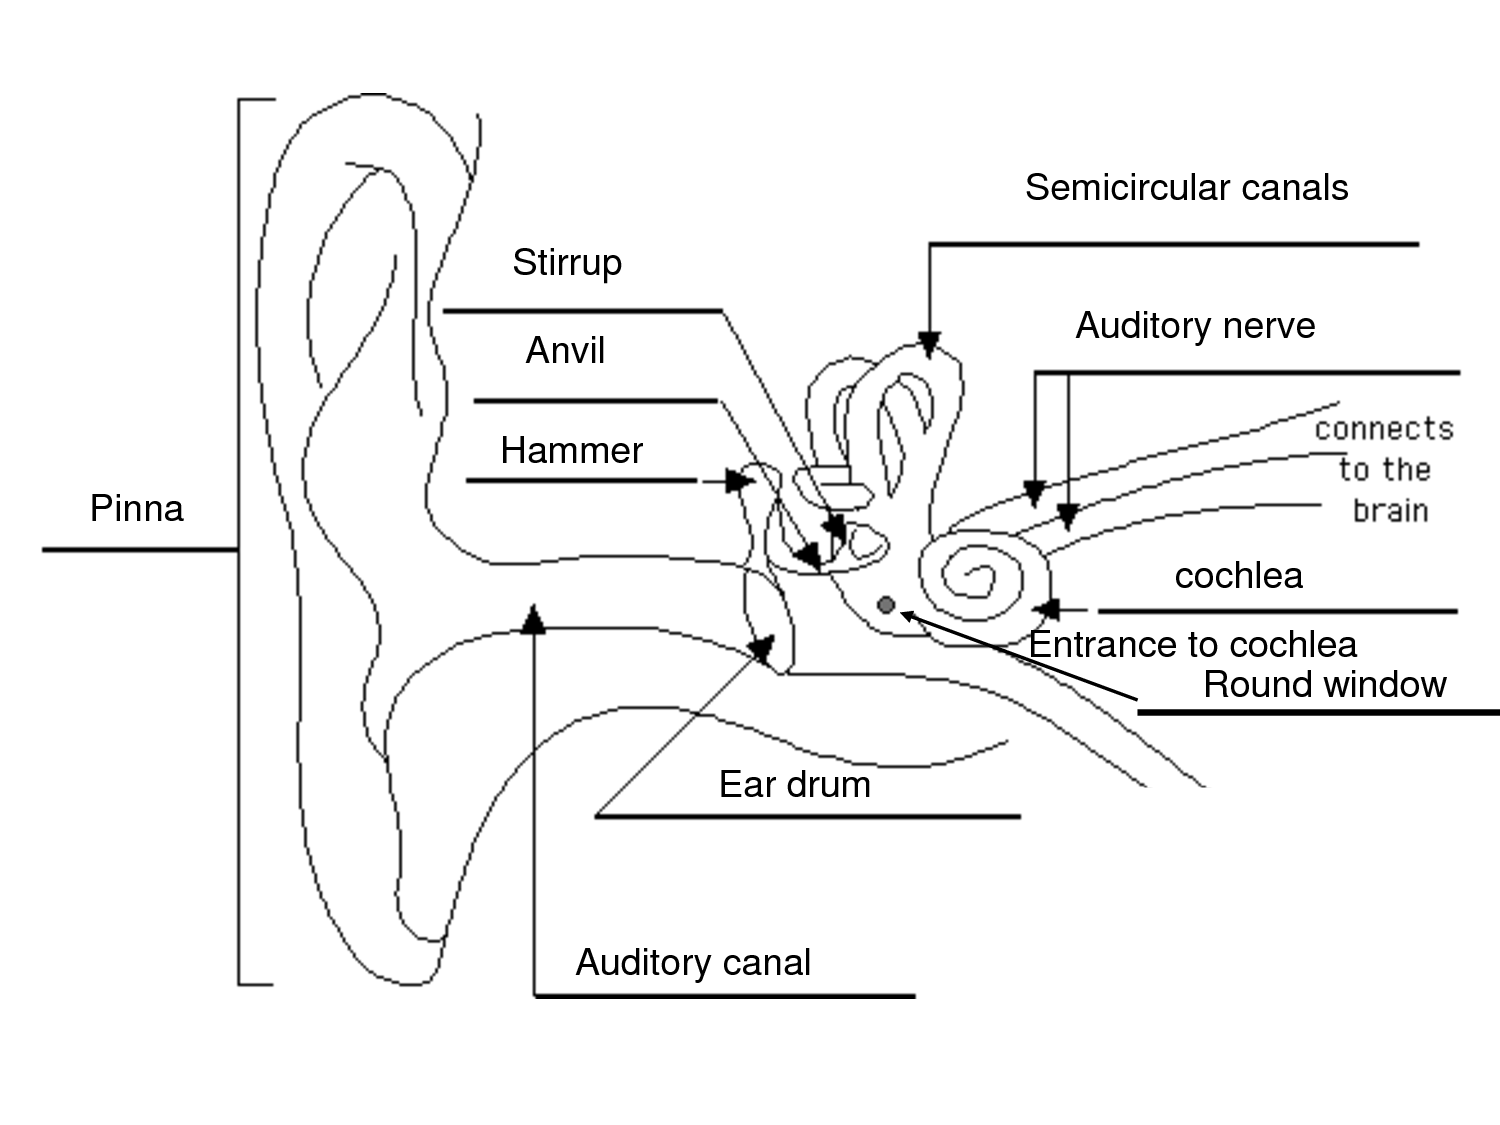 Pass page sound light and waves pinterest diagram ear diagram label quiz ear free engine image for user ccuart Images